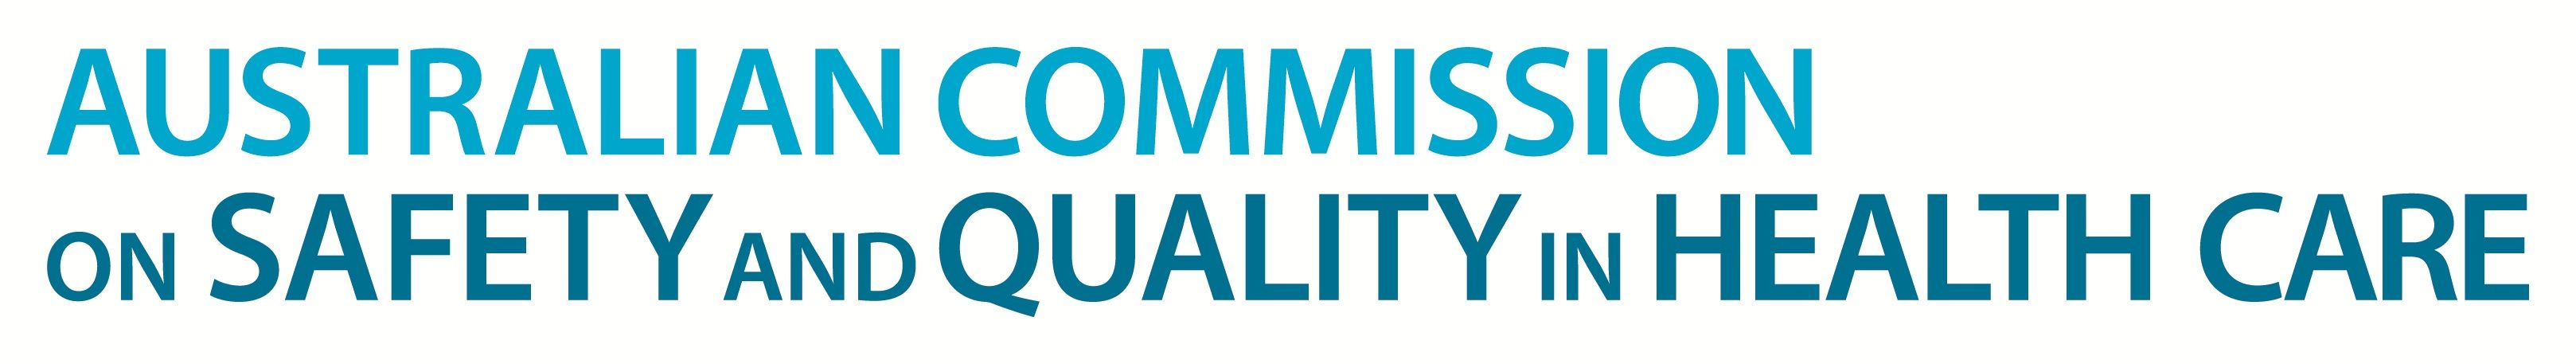 Australian Commission on safety and quality in health care Logo